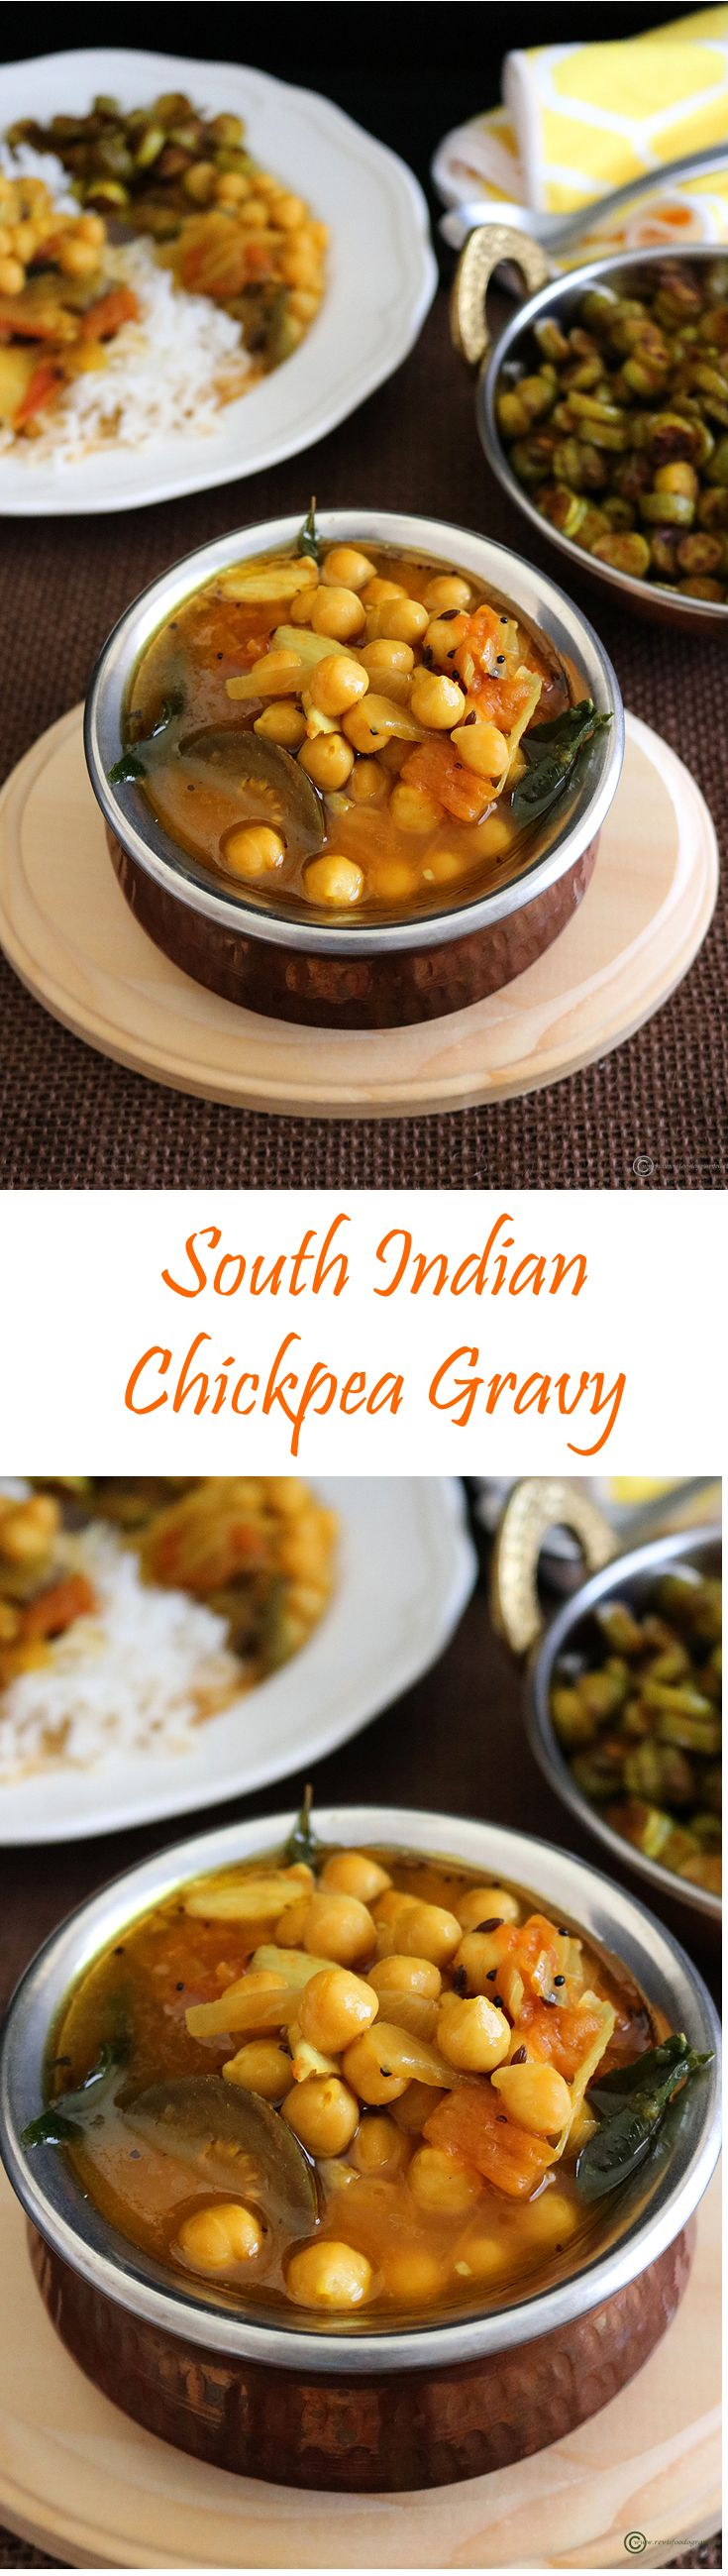 550 best indian food images on pinterest indian food recipes an extremely healthy protein rich and easy to make south indian gravykuzhambu made forumfinder Gallery